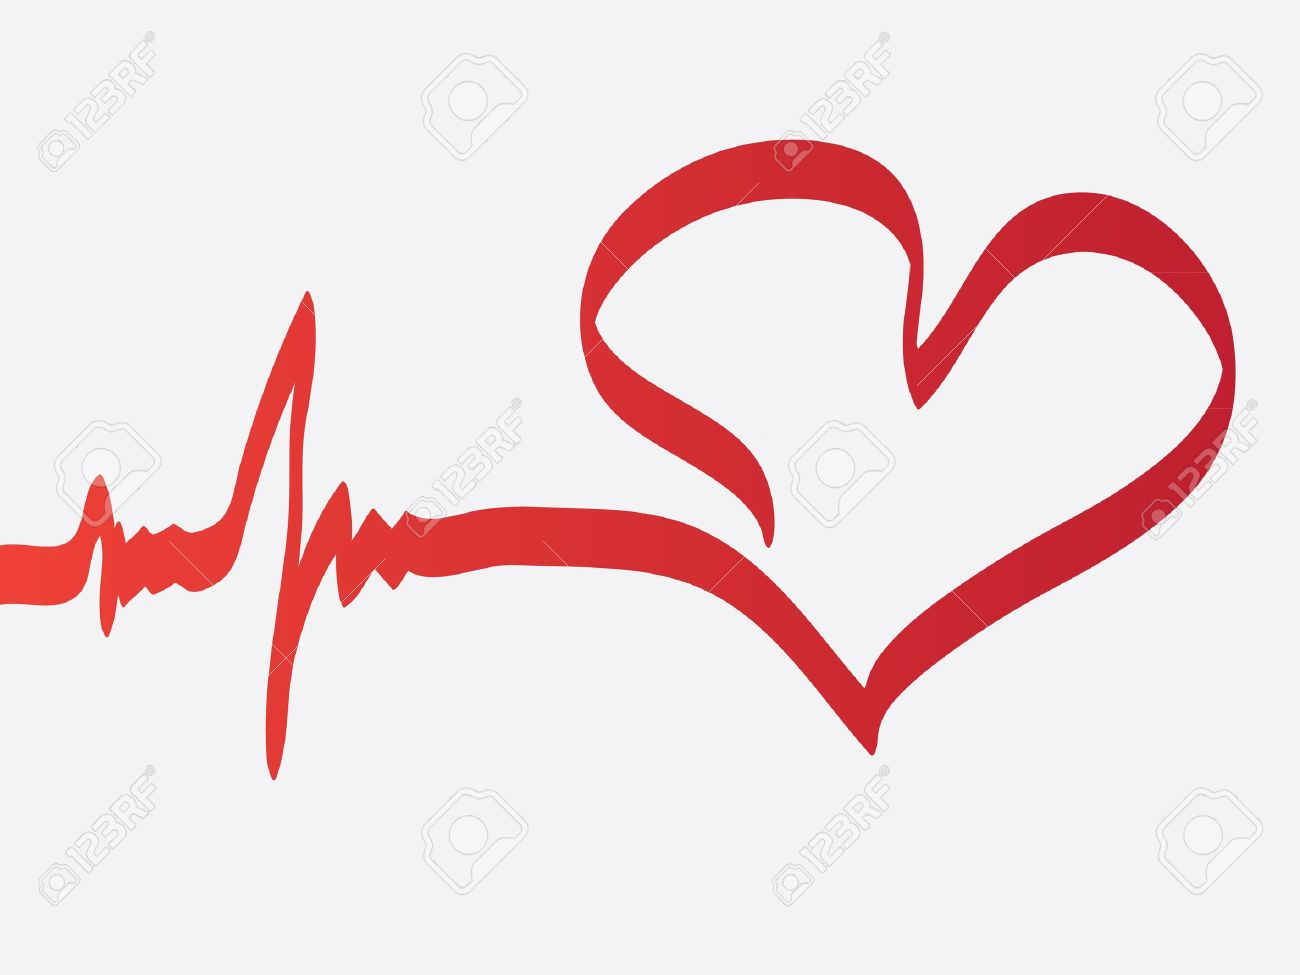 Free download best on. Heartbeat clipart heart rate